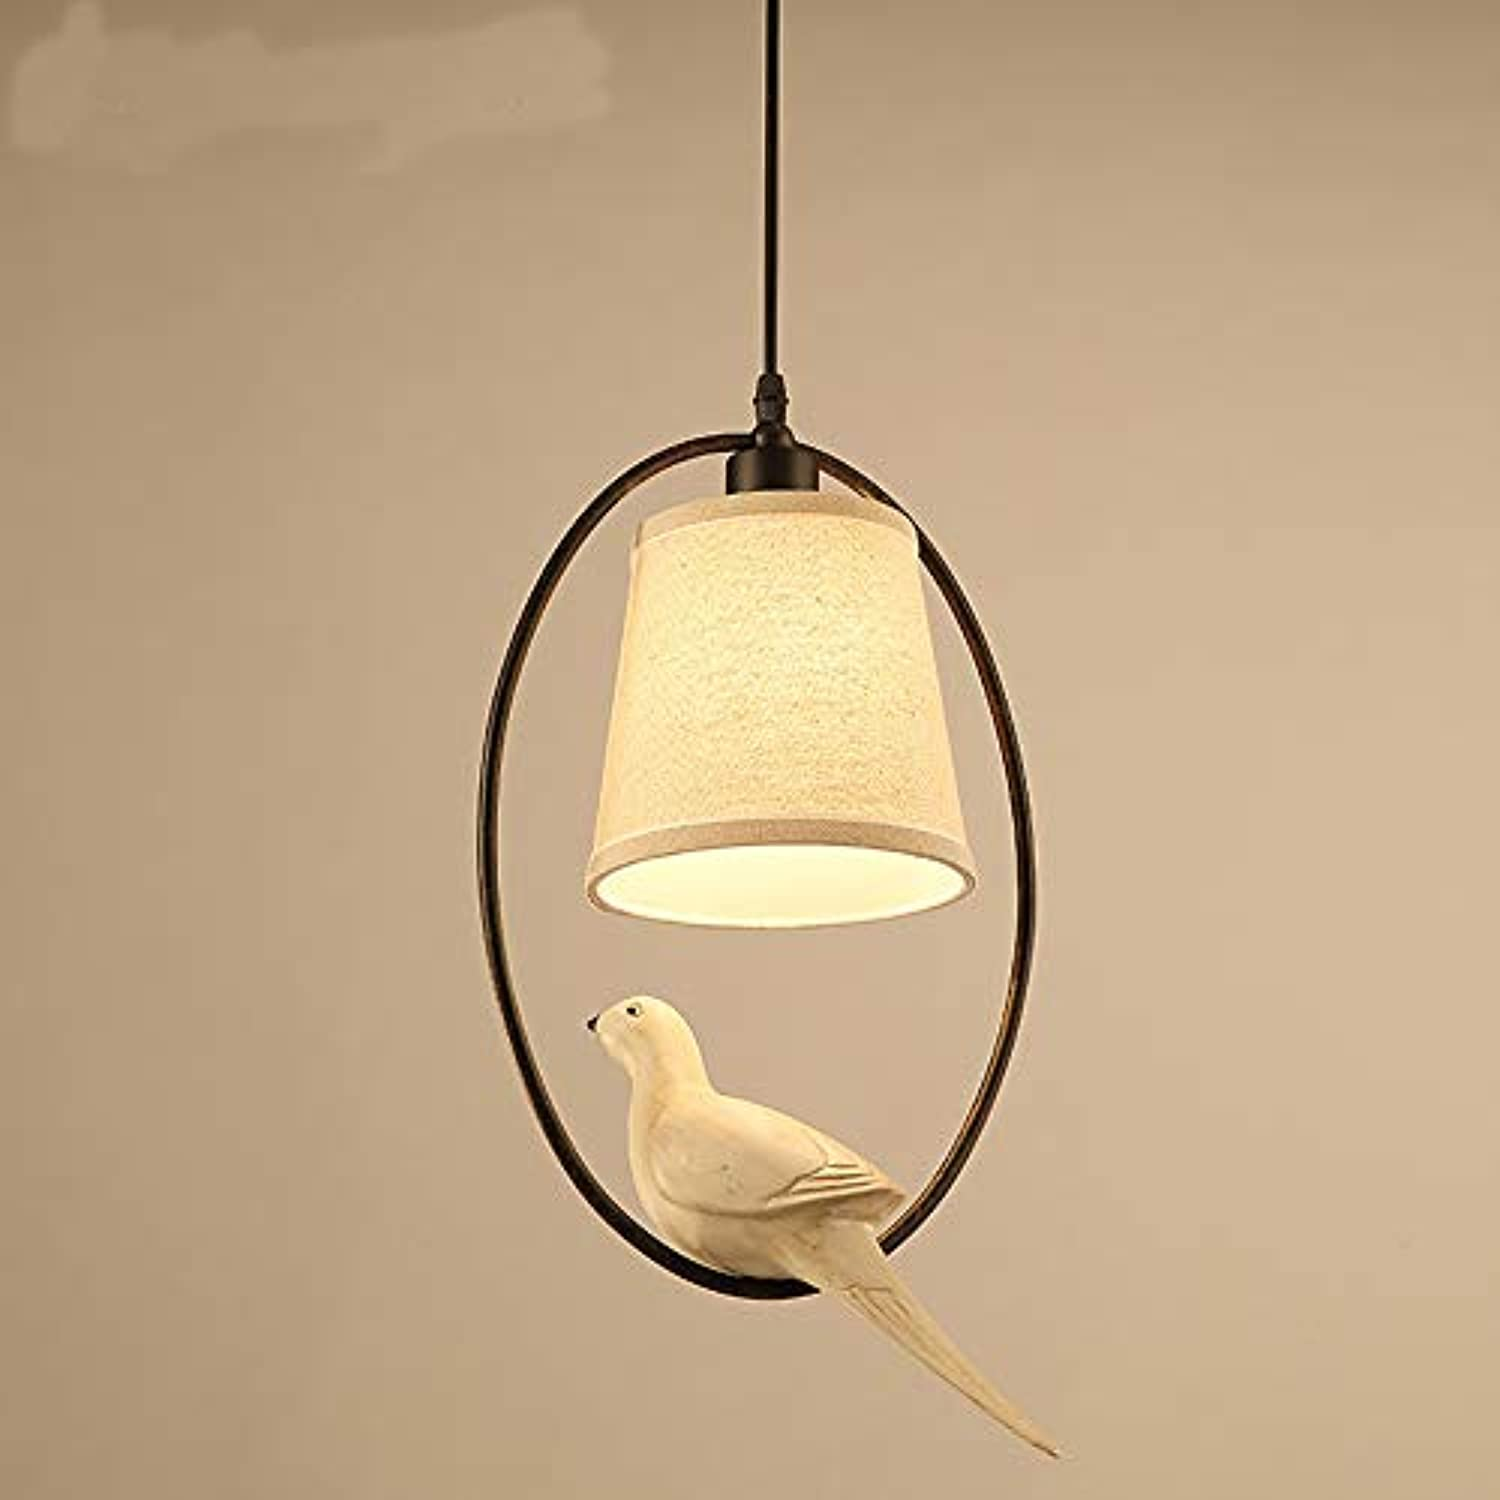 Vintage Industrial E27 Bird Chandelier, Creative Bar Chandelier, Simple Bedroom Lampe-E27